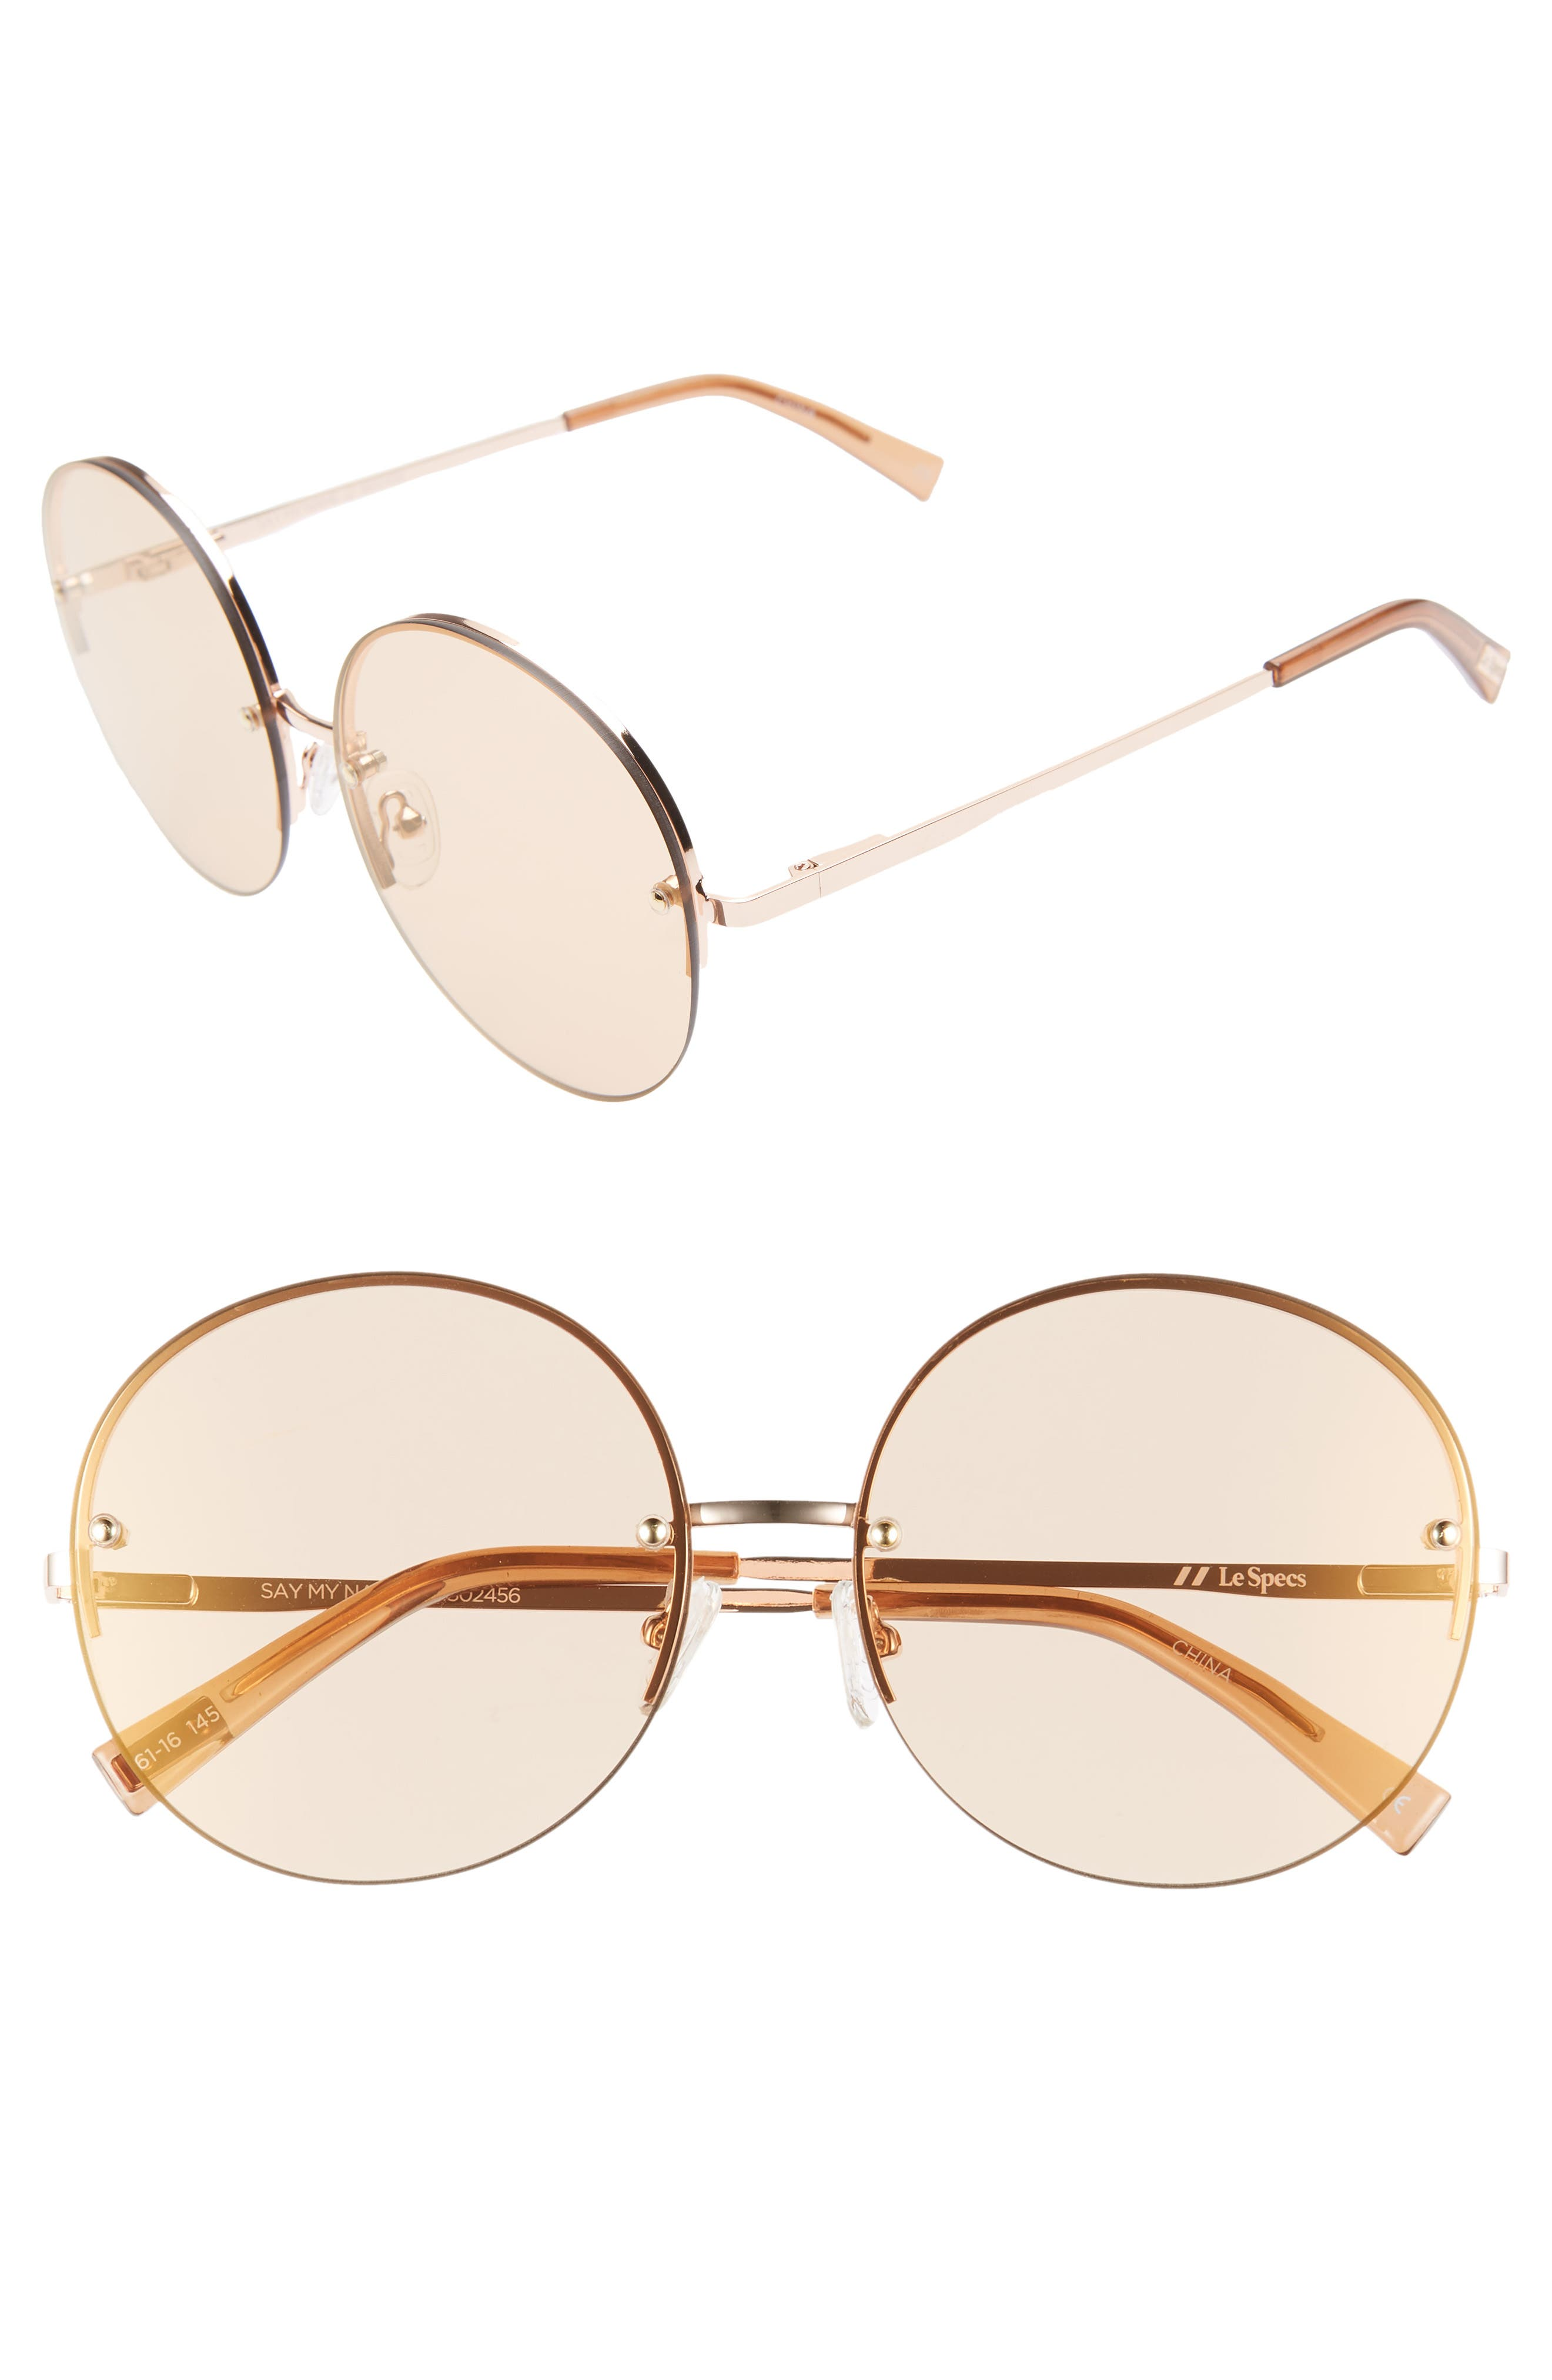 Le Specs Say My Name 61Mm Semi Rimless Round Sunglasses - Rose Gold